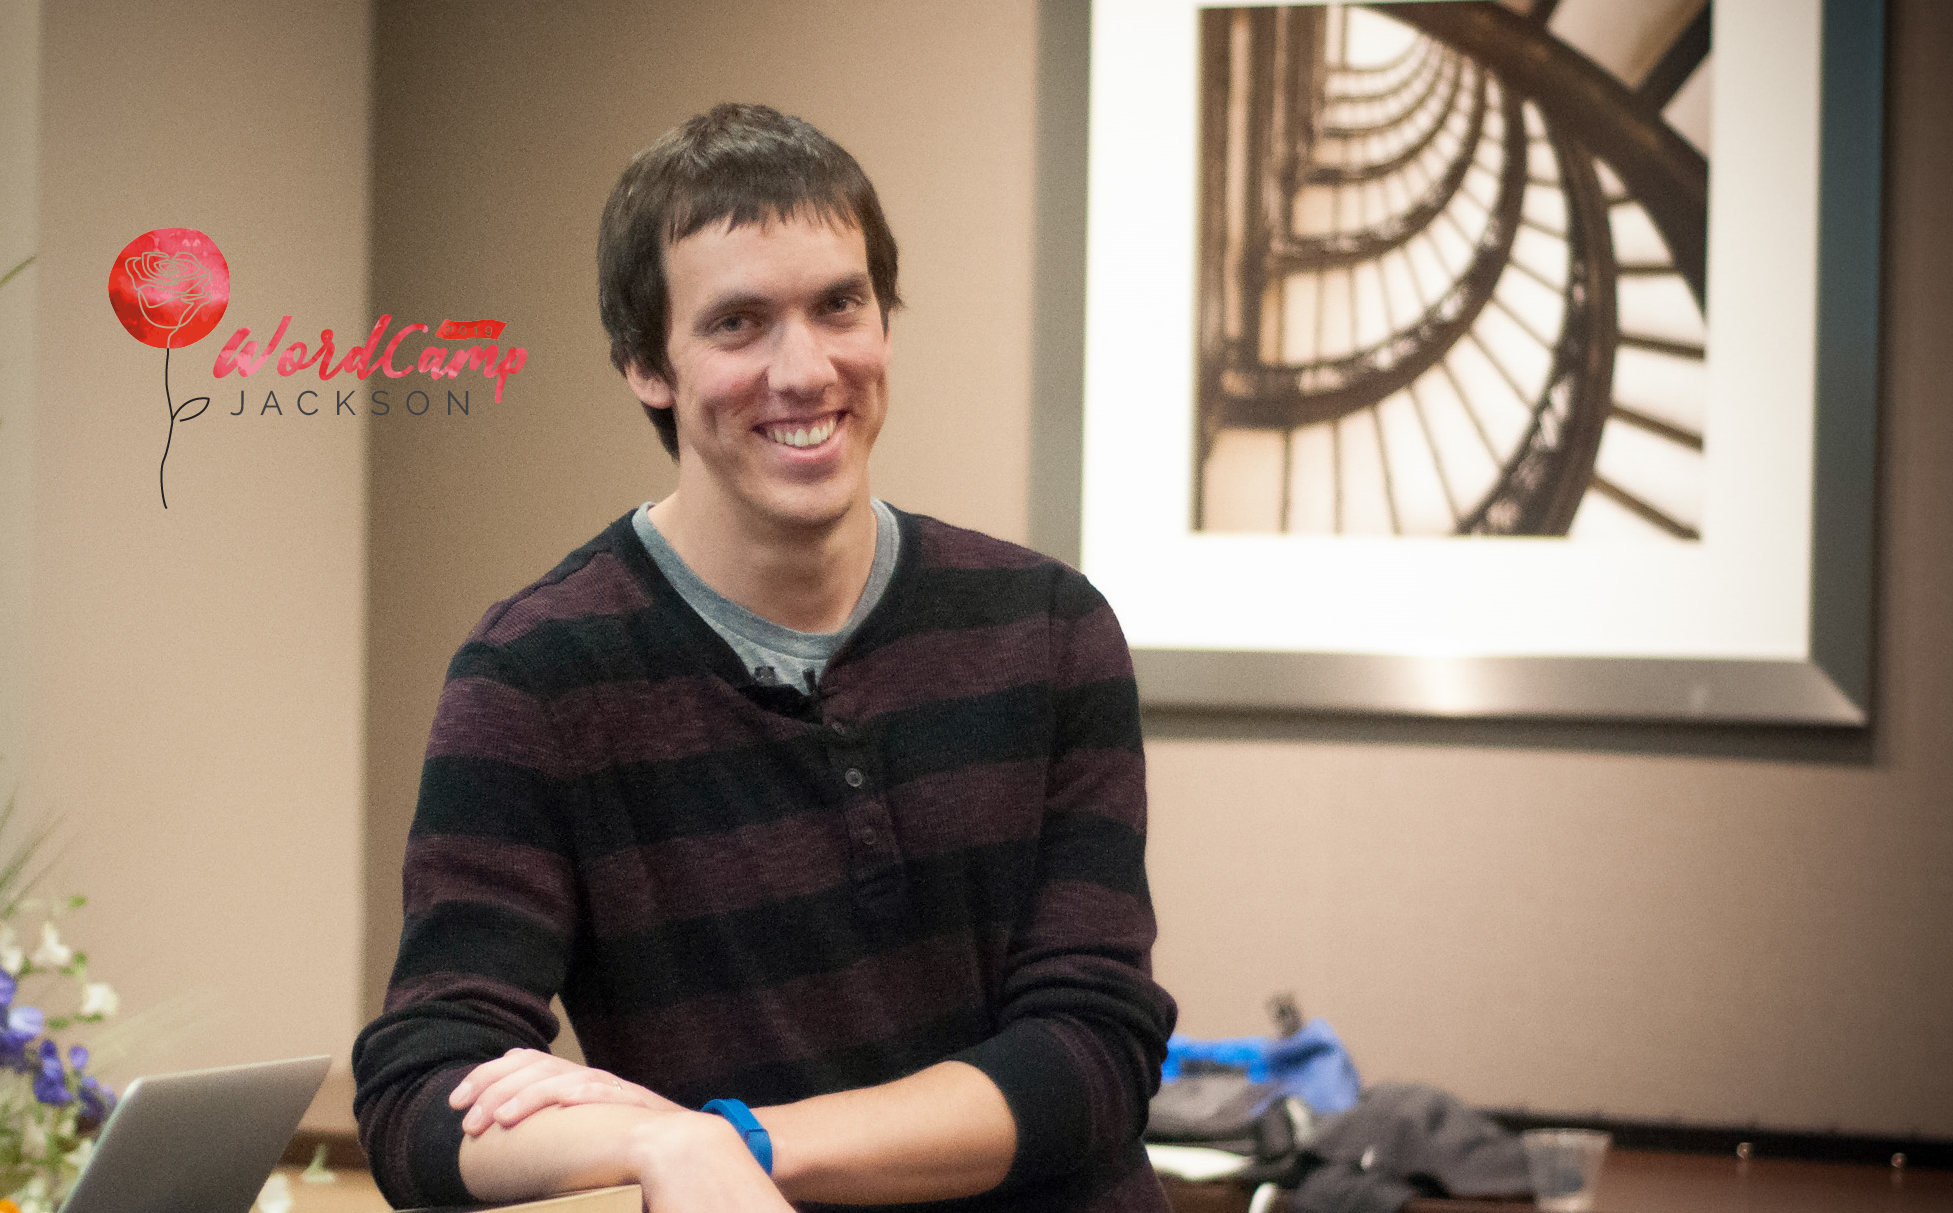 EXCLUSIVE HIGHLIGHTS: Kyle Maurer from WordCamp Jackson 2019